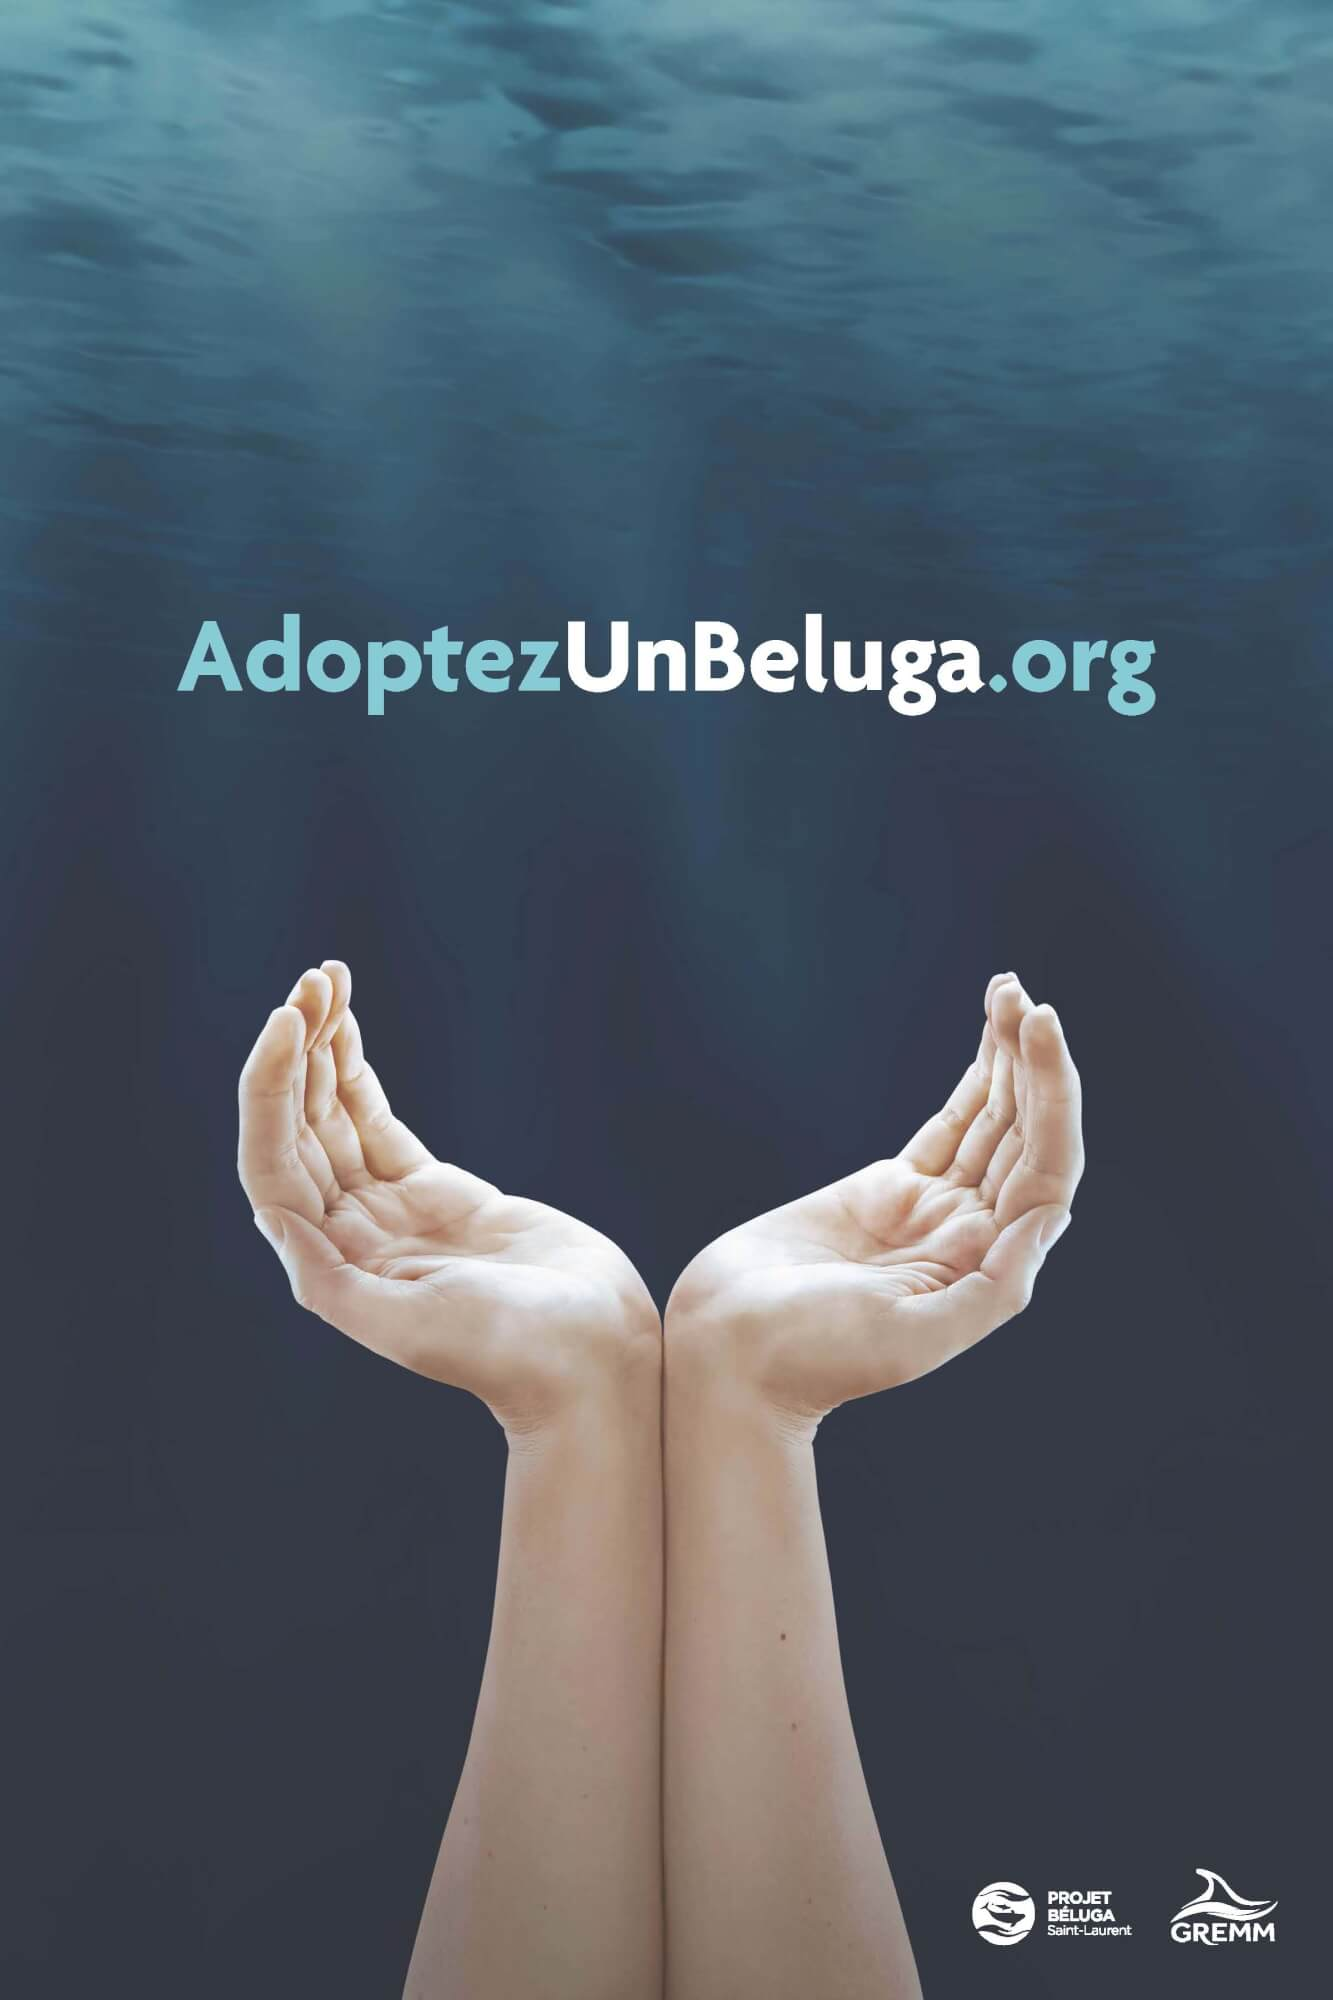 Affiche promotionnelle Adoptezunbeluga.org